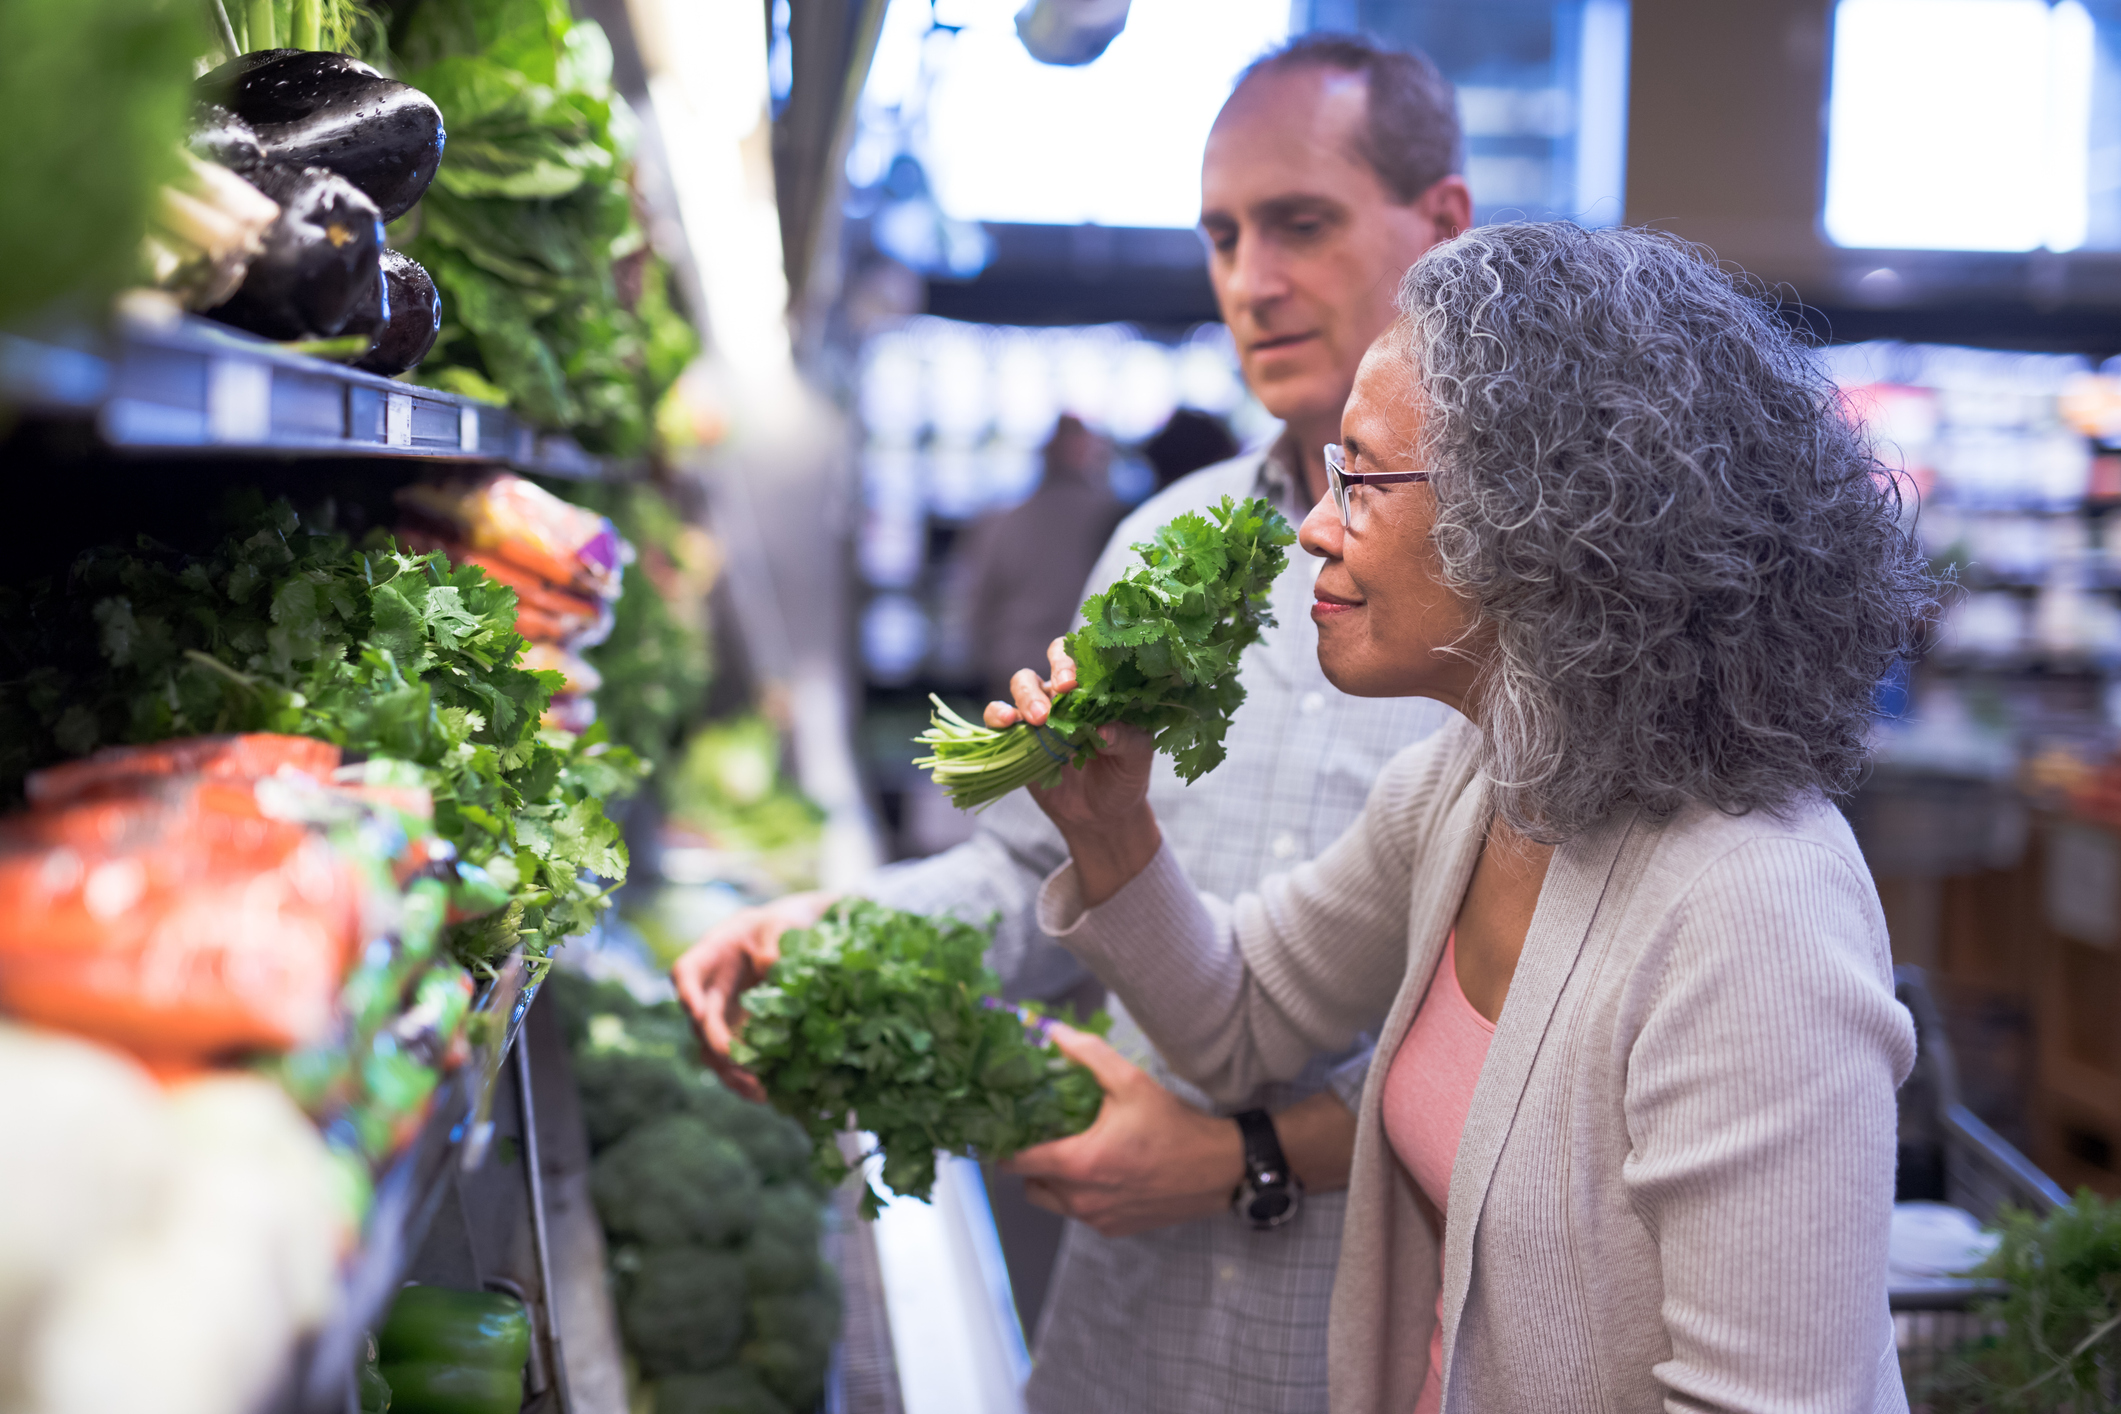 woman smelling kale at a supermarket